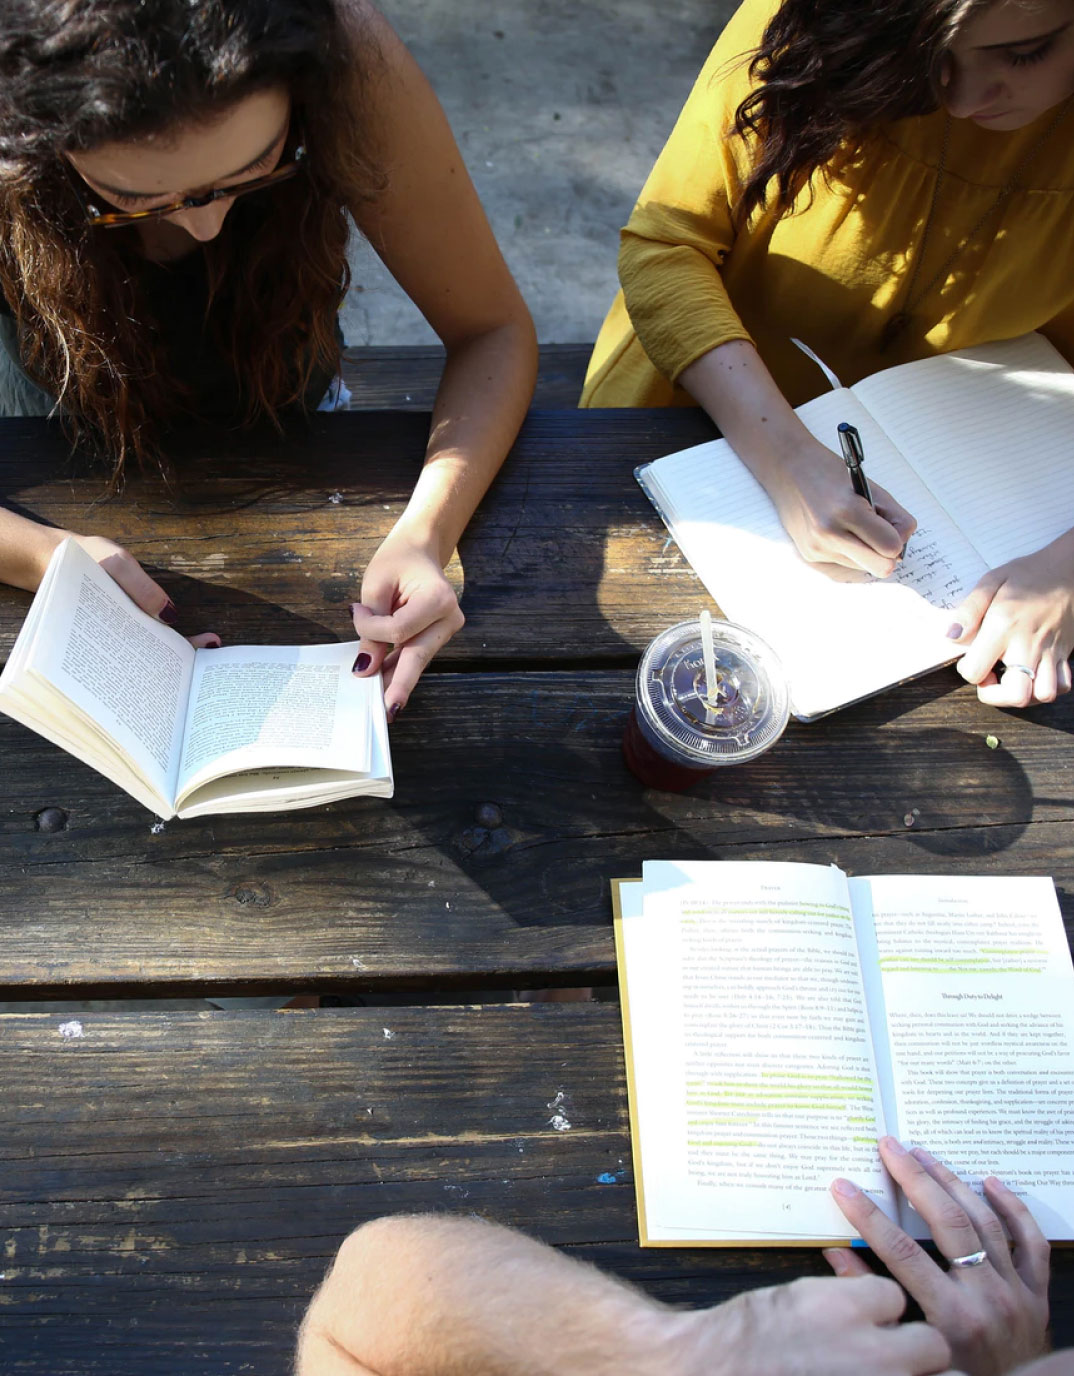 Why choose our college essay writing service over others